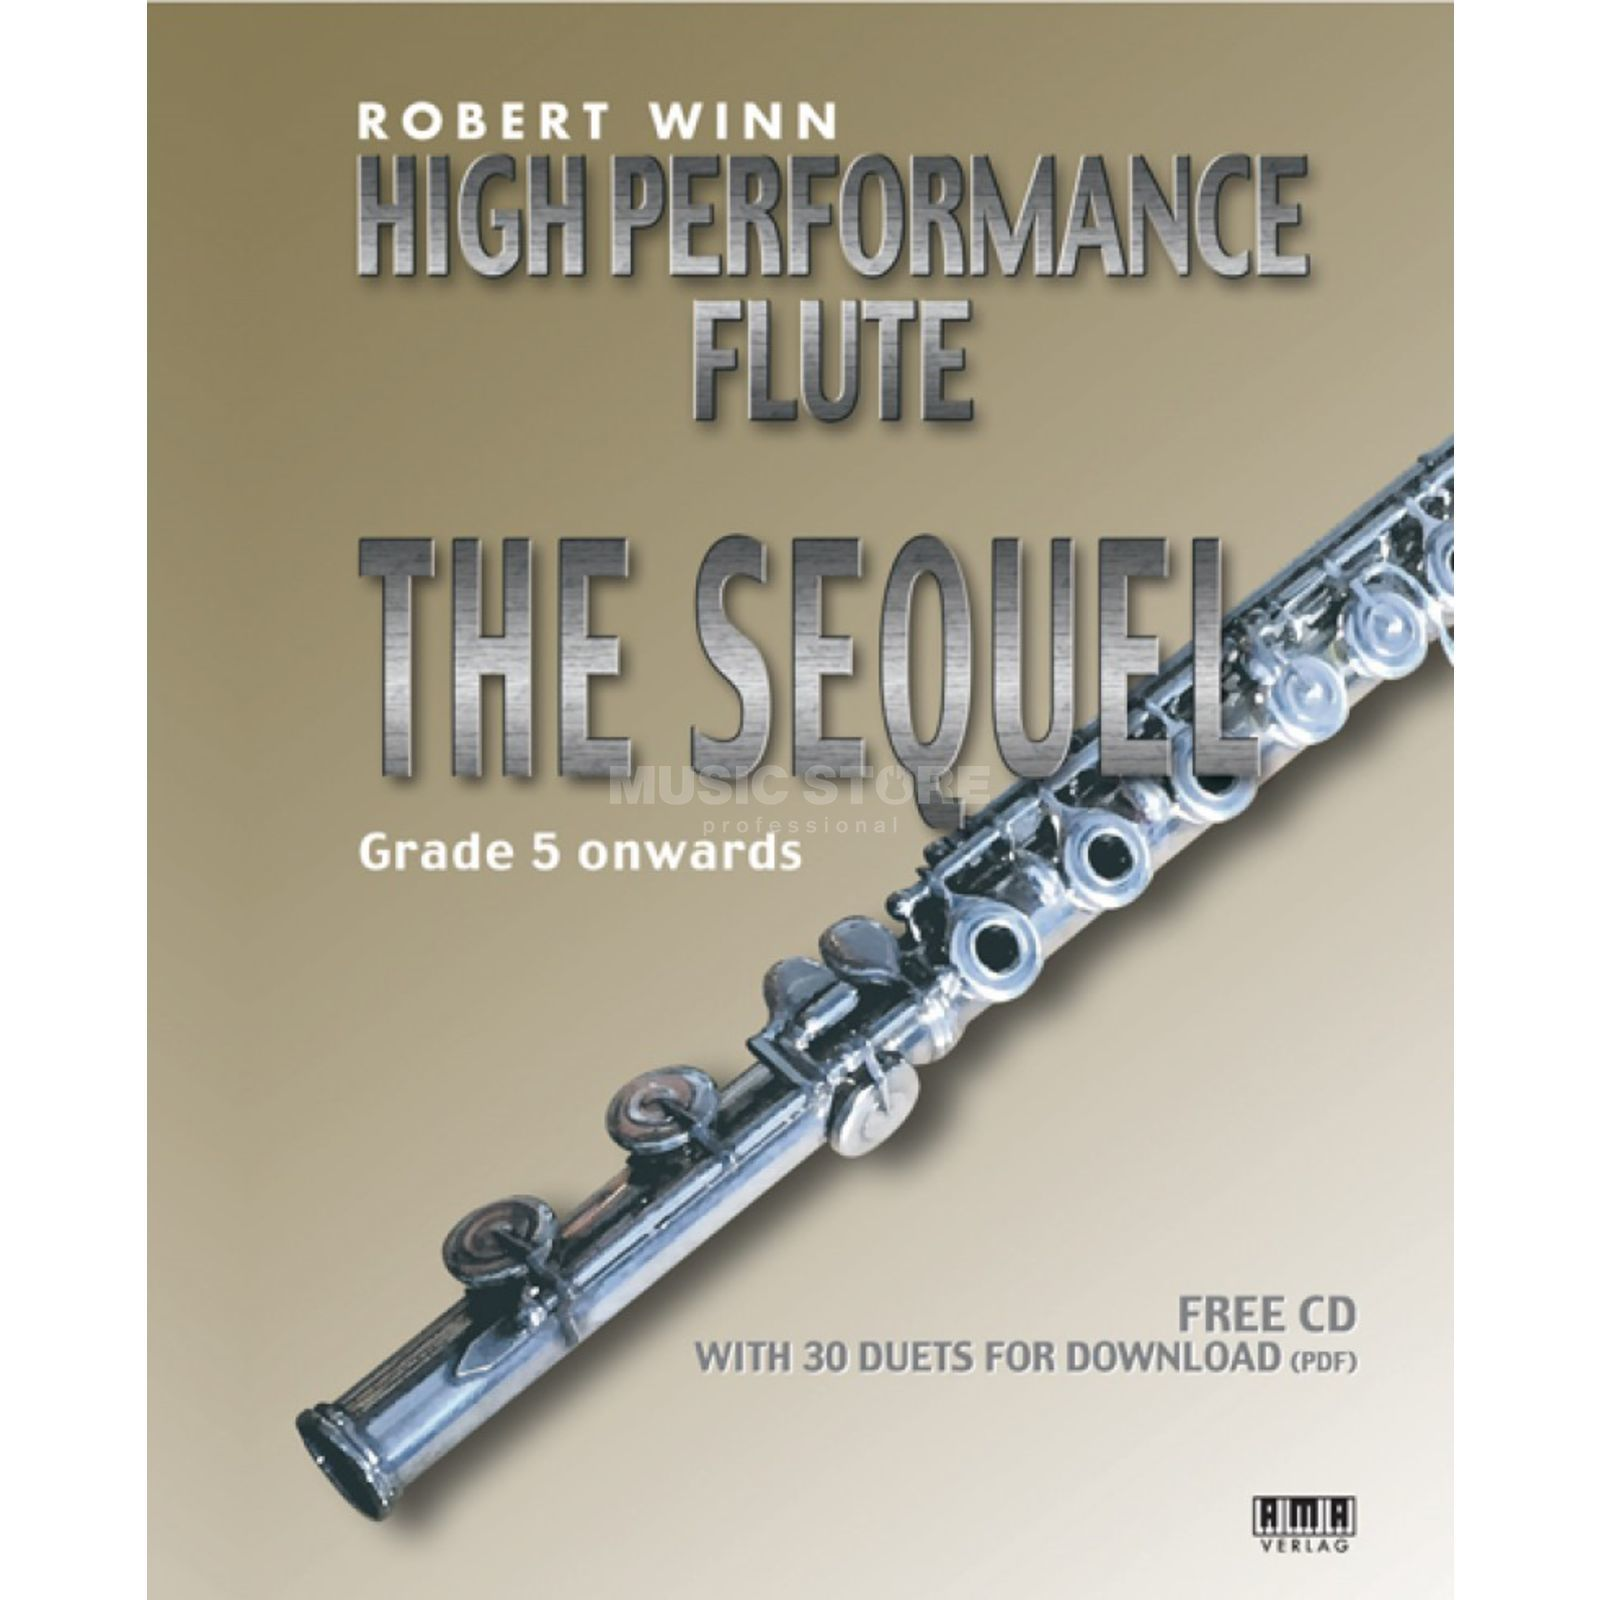 AMA Verlag High Performance Flute - The Sequel Produktbild